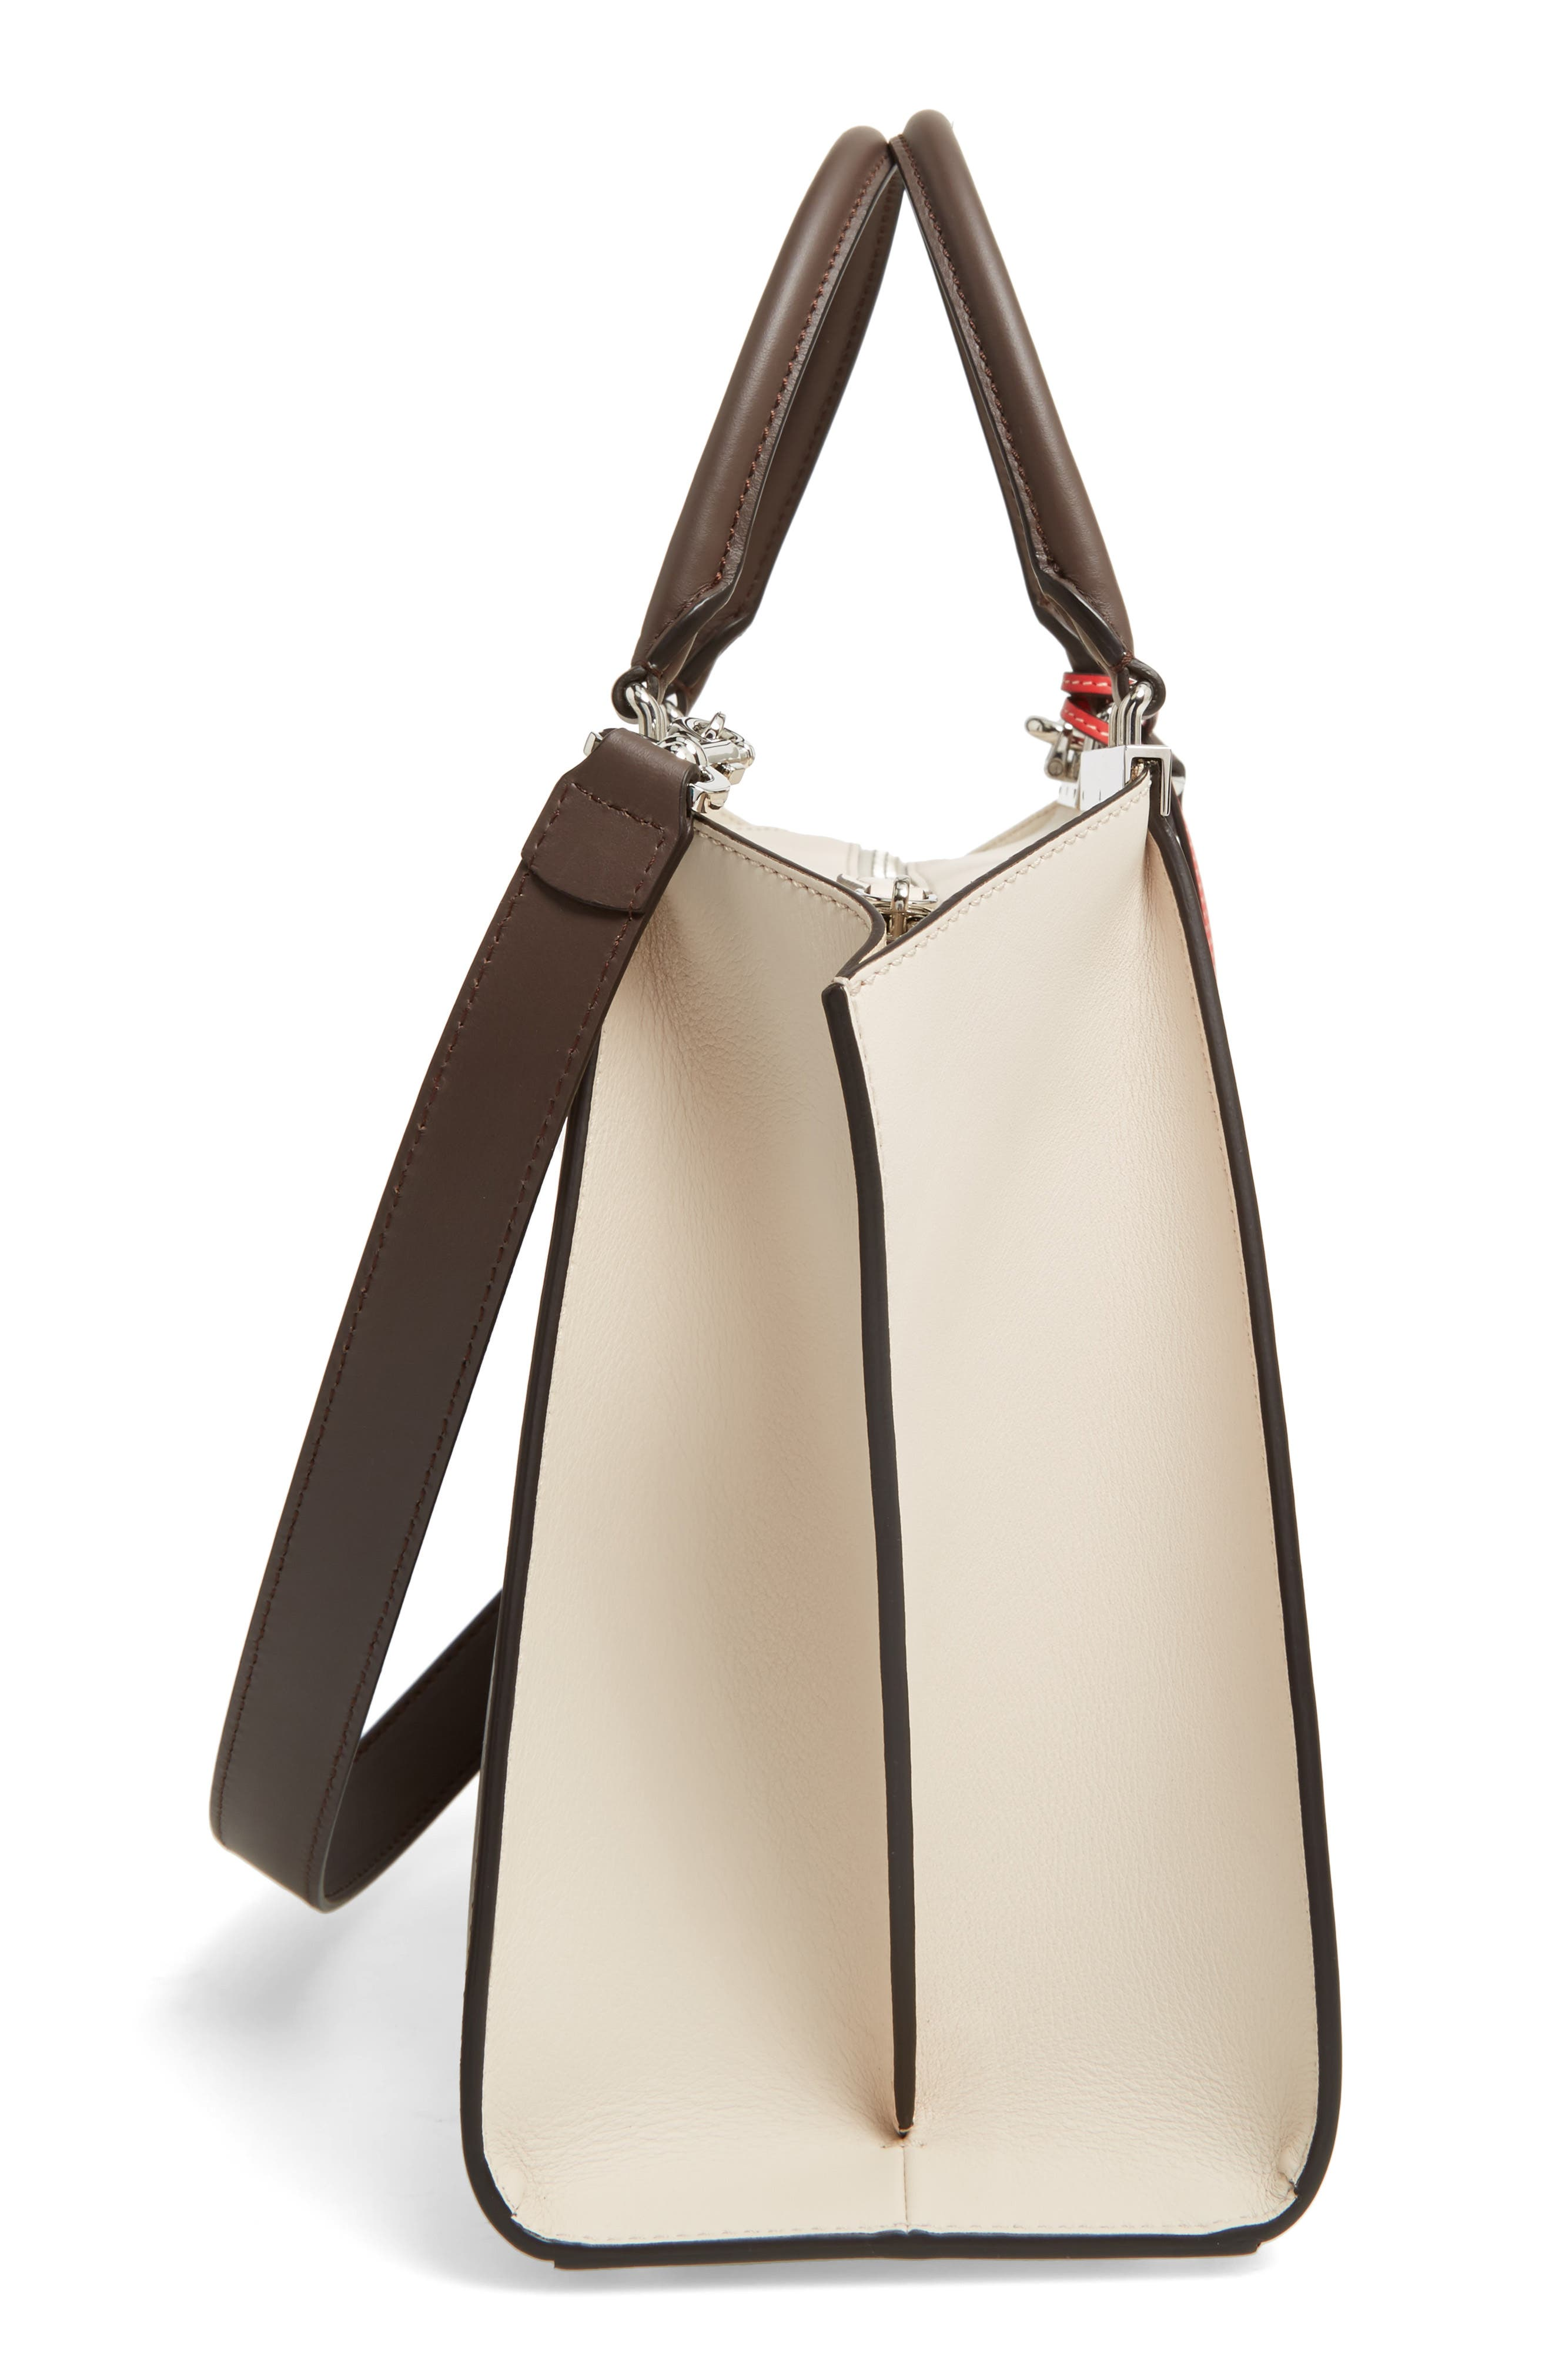 3Jours Colorblock Calfskin Leather Shopper,                             Alternate thumbnail 6, color,                             CHOCOLATE/ WHITE